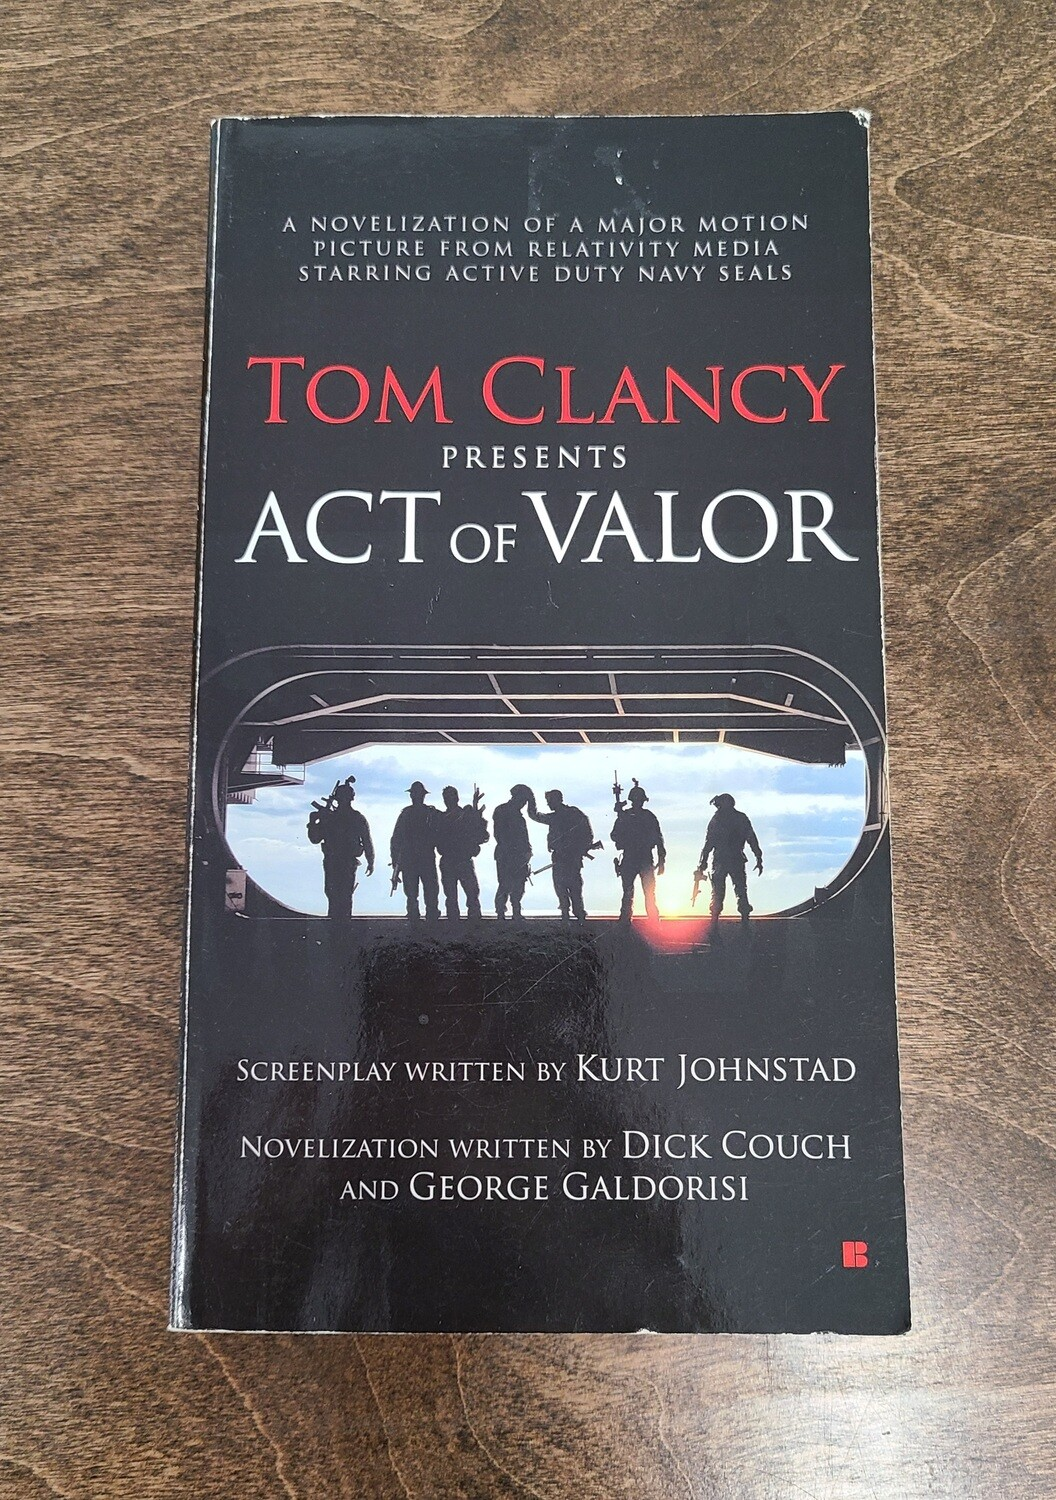 Act of Valor by Tom Clancy, Kurt Johnstad, Dick Couch, and George Galdorisi